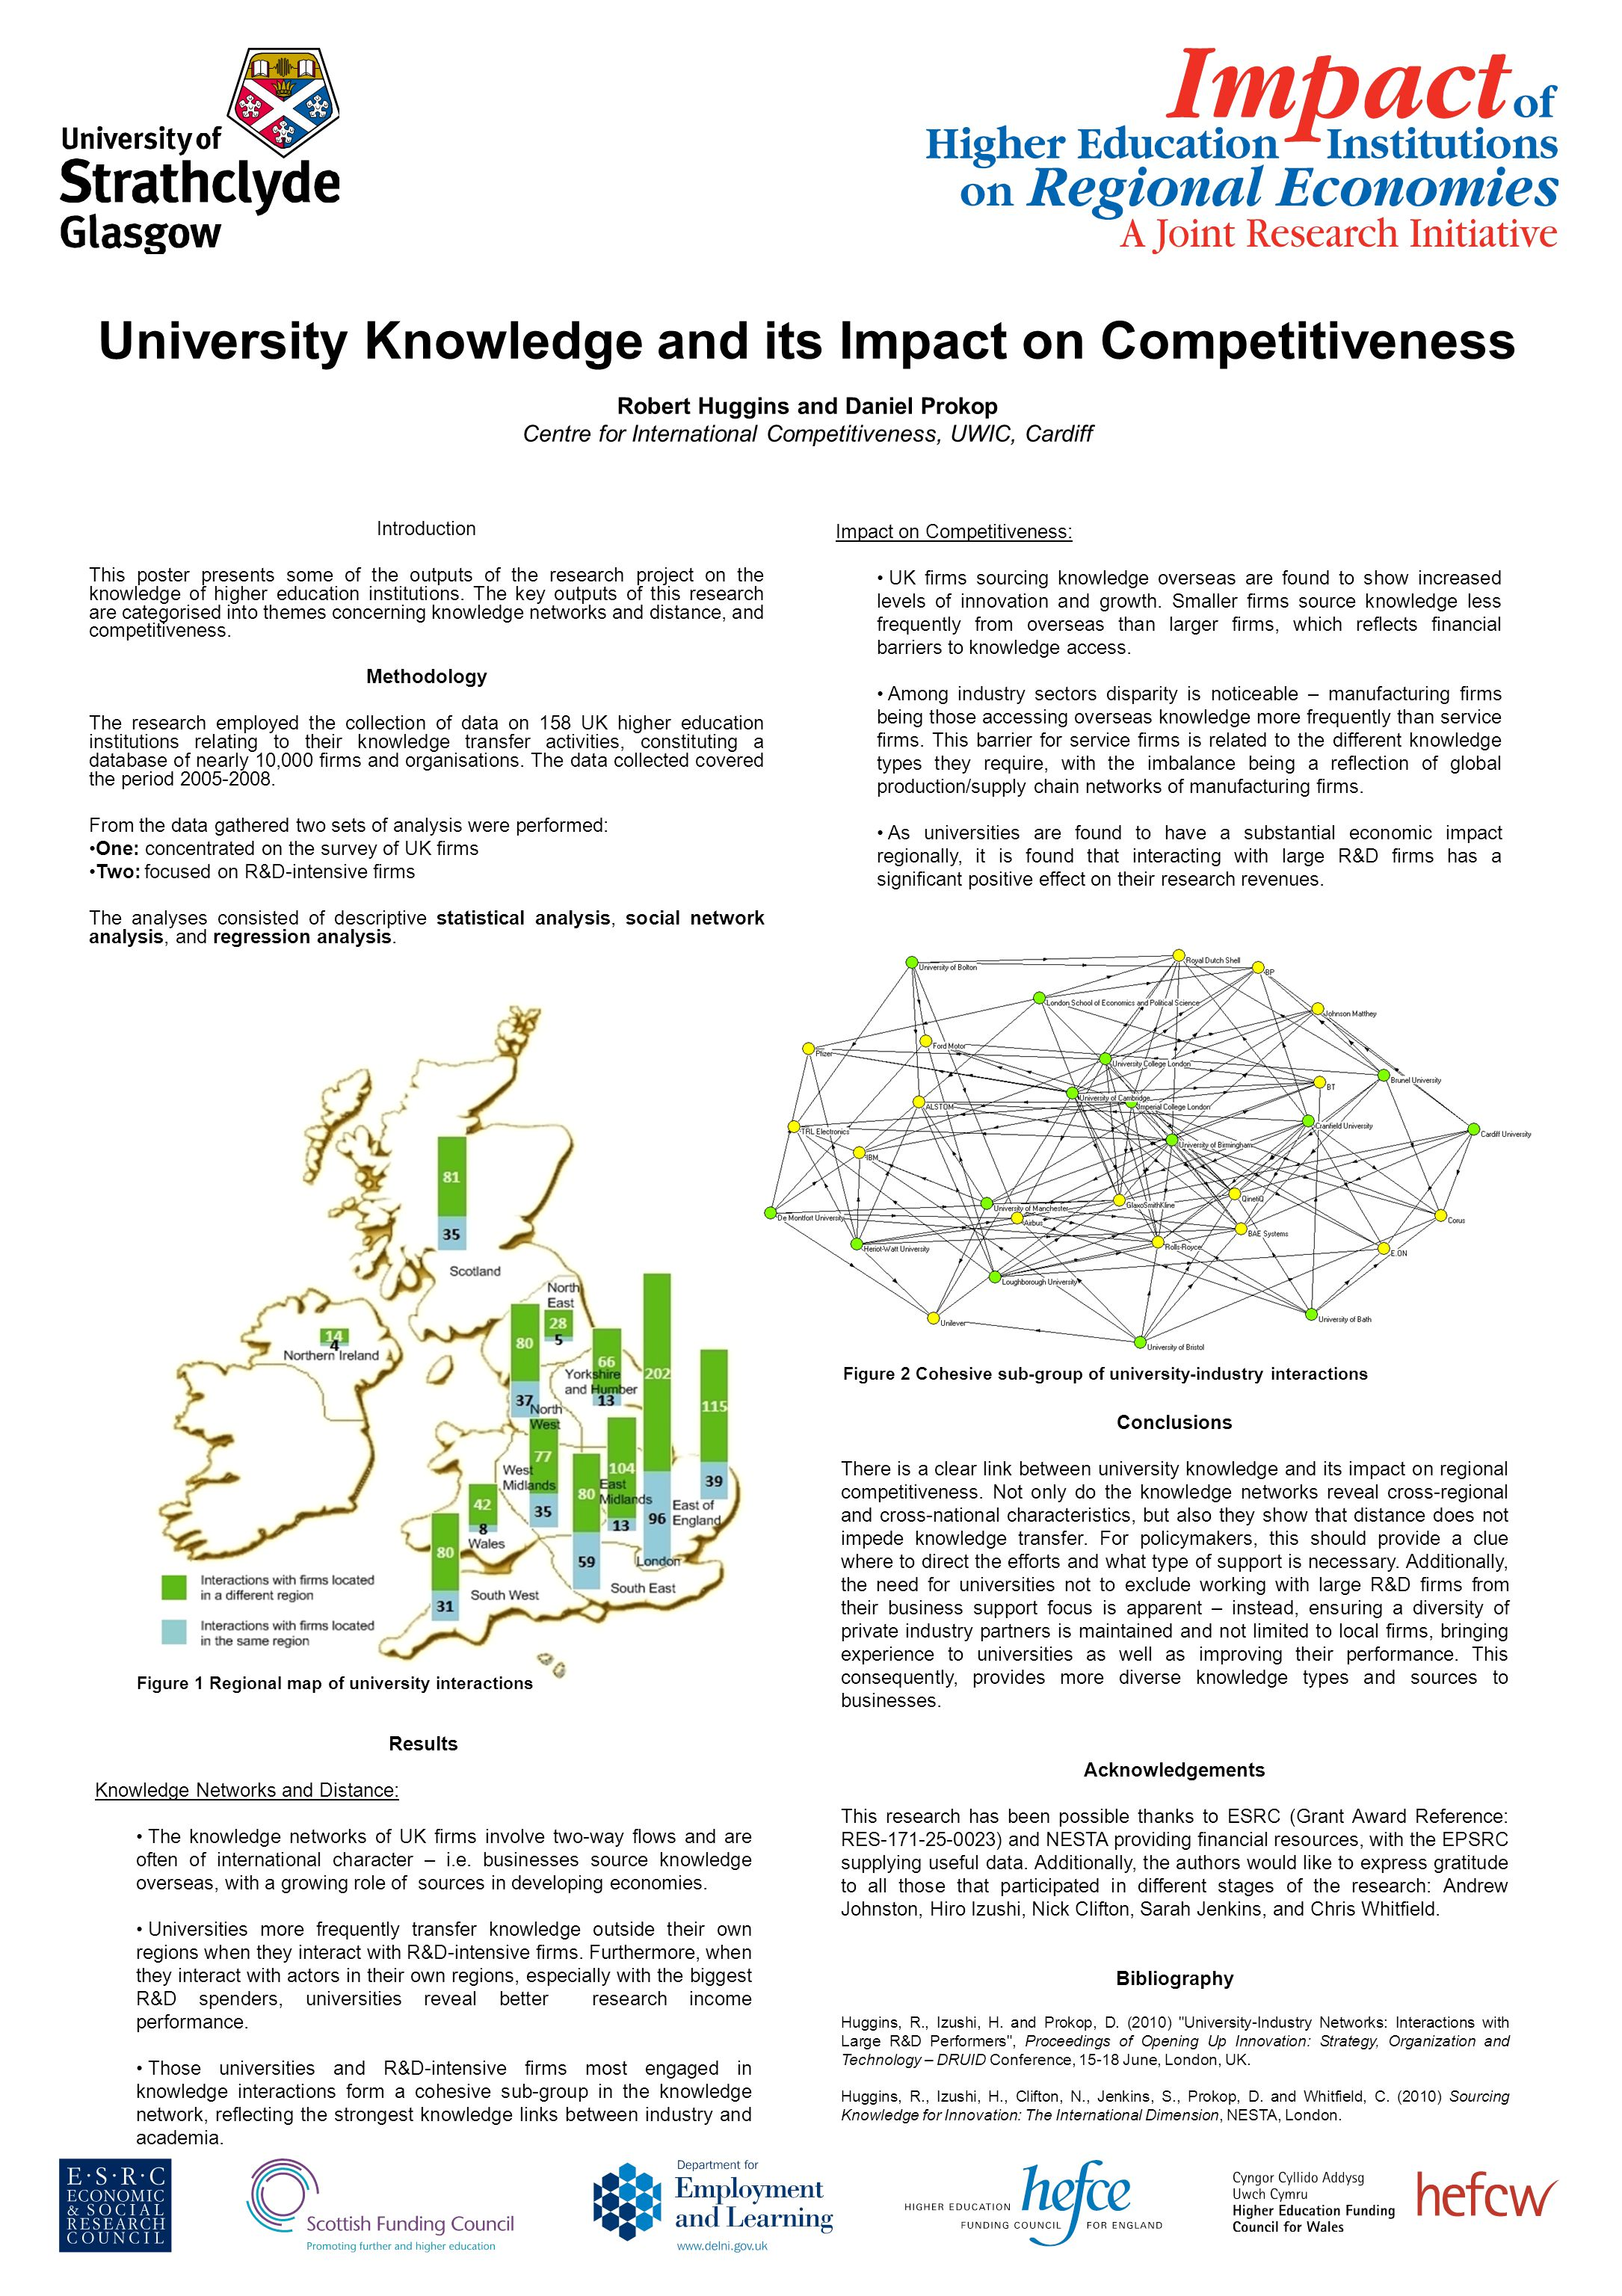 University Knowledge and its Impact on Competitiveness Robert Huggins and Daniel Prokop Centre for International Competitiveness, UWIC, Cardiff Introduction This poster presents some of the outputs of the research project on the knowledge of higher education institutions.